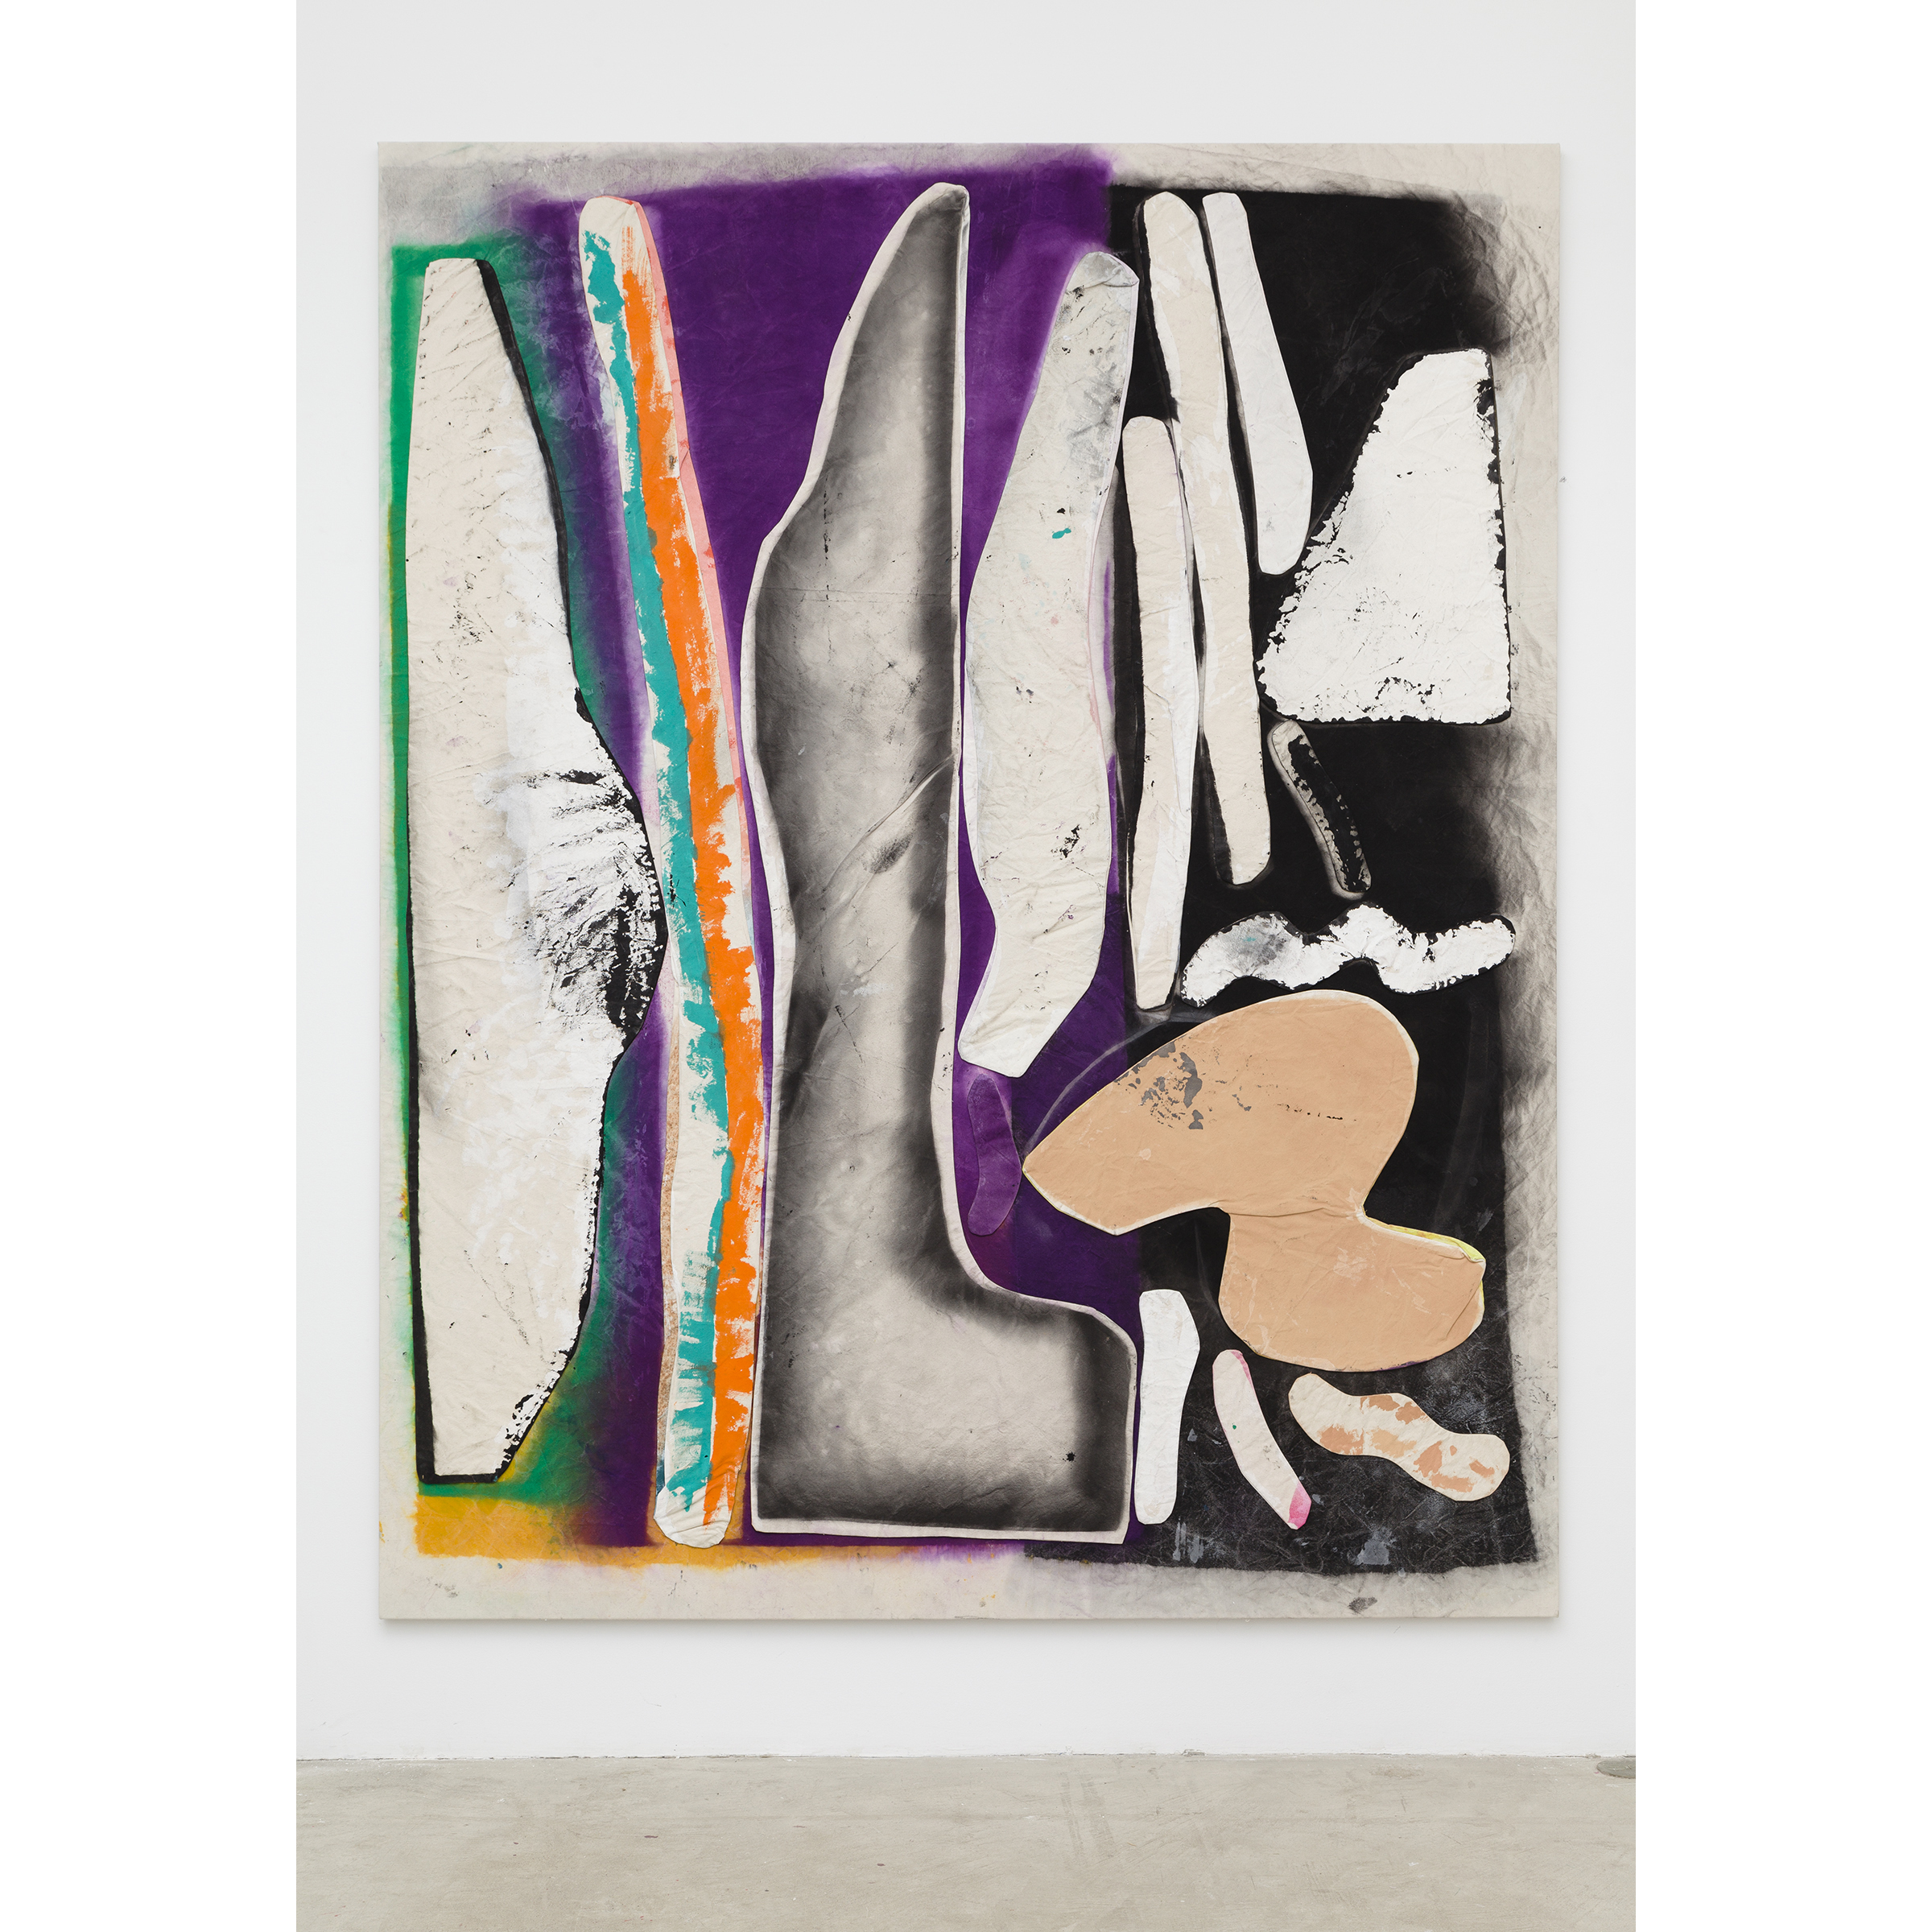 Jess Fuller, 'Groove' was a Verb and 'Dream' was an Action , 2014,acrylic, fabric dye and gesso on canvas,100 x 80 in